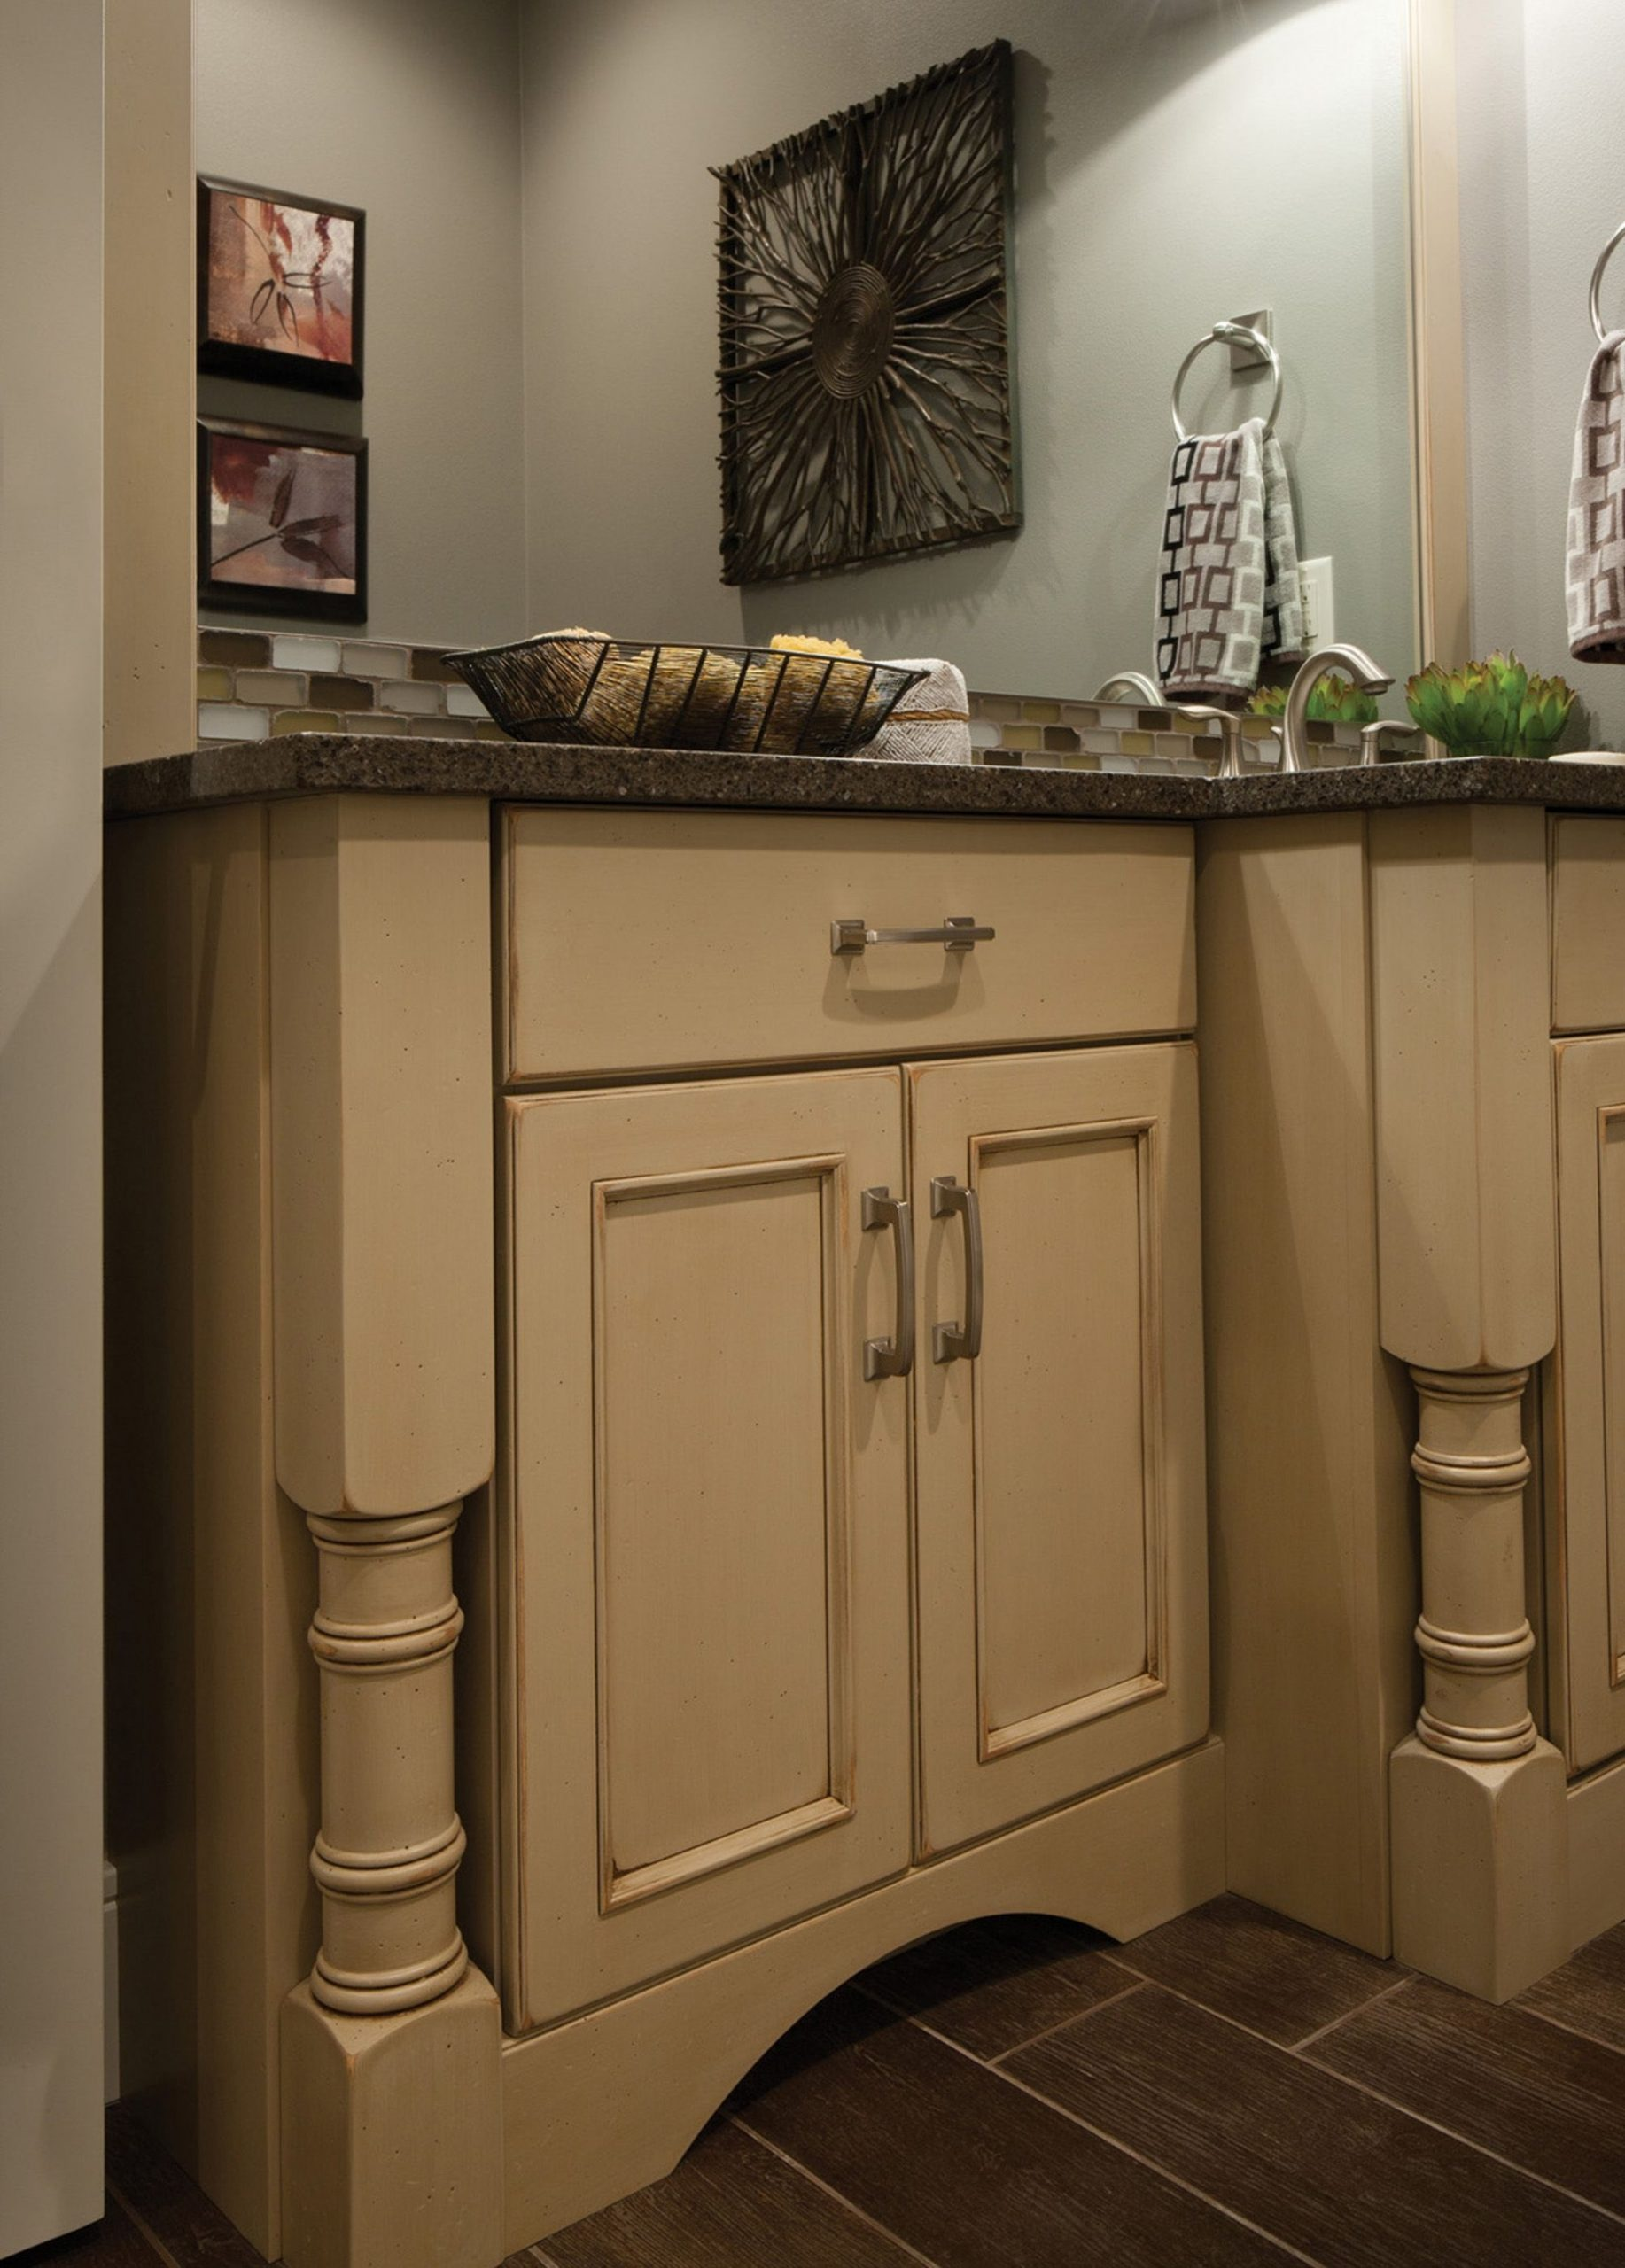 Our Cabinetry Dura Supreme Cabinetry   Custom Bathroom 40+ Chapel Hill Design Bathroom Accessories Inspirations